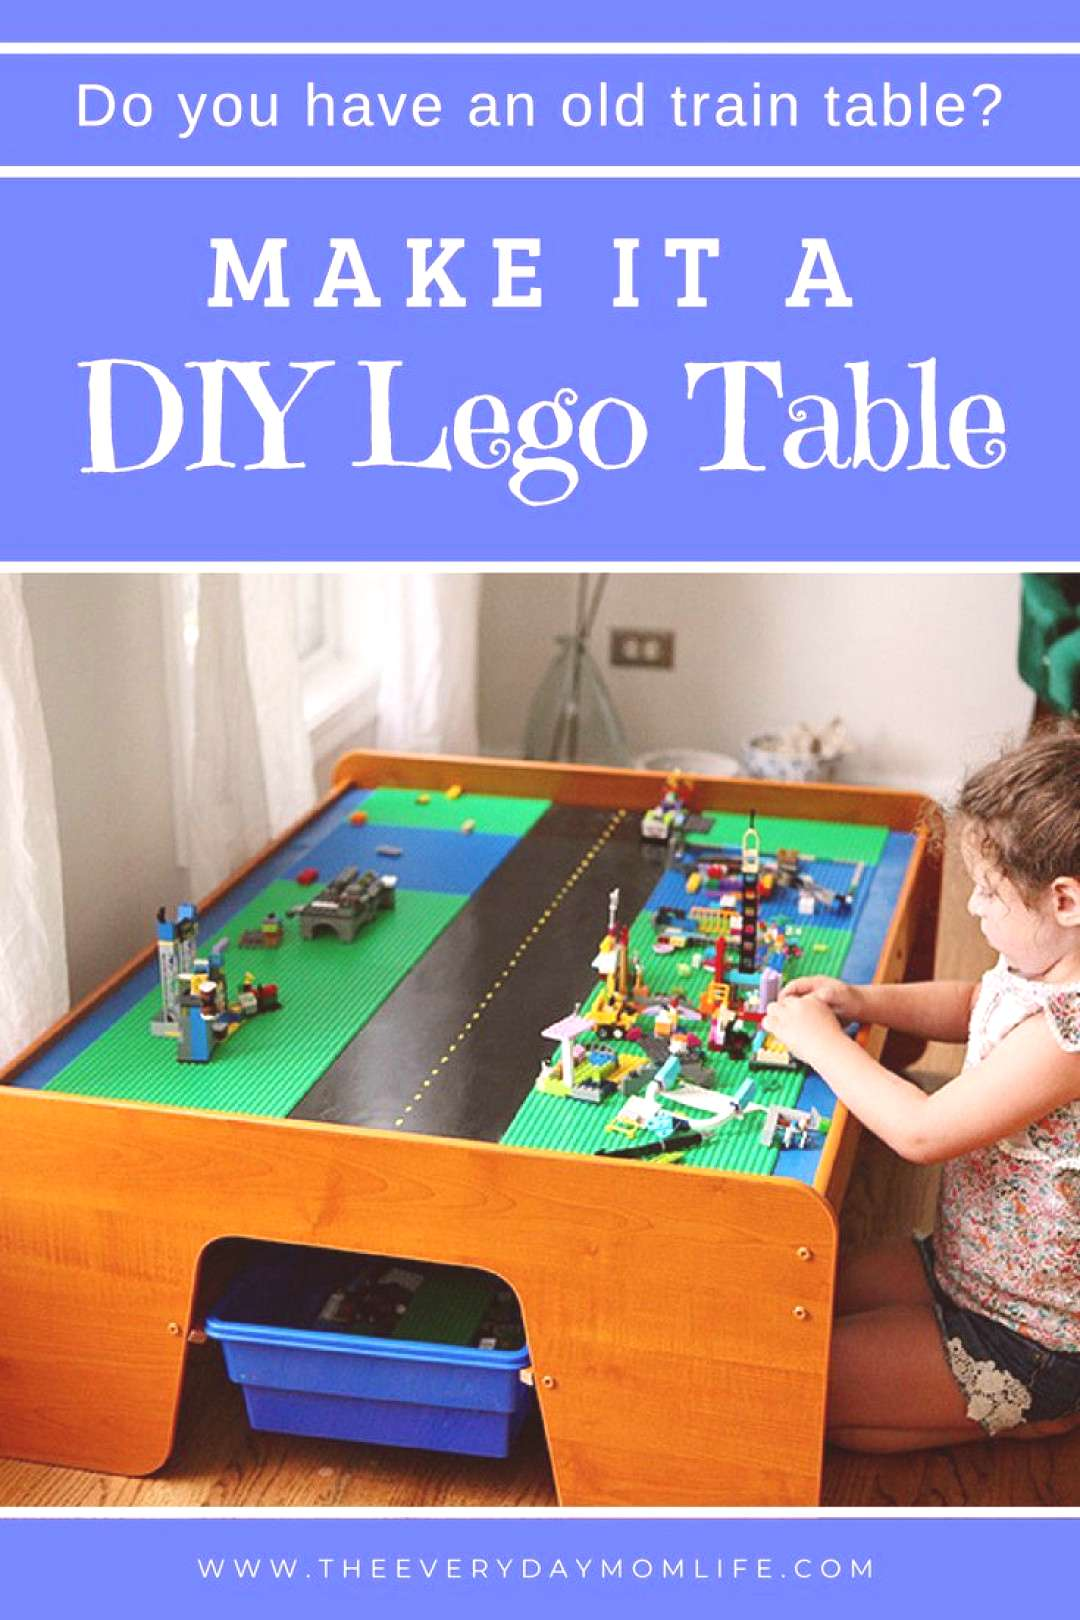 How To Turn An Old Train Table Into An Amazing DIY Lego Table How To Turn An Old Train Table Into A